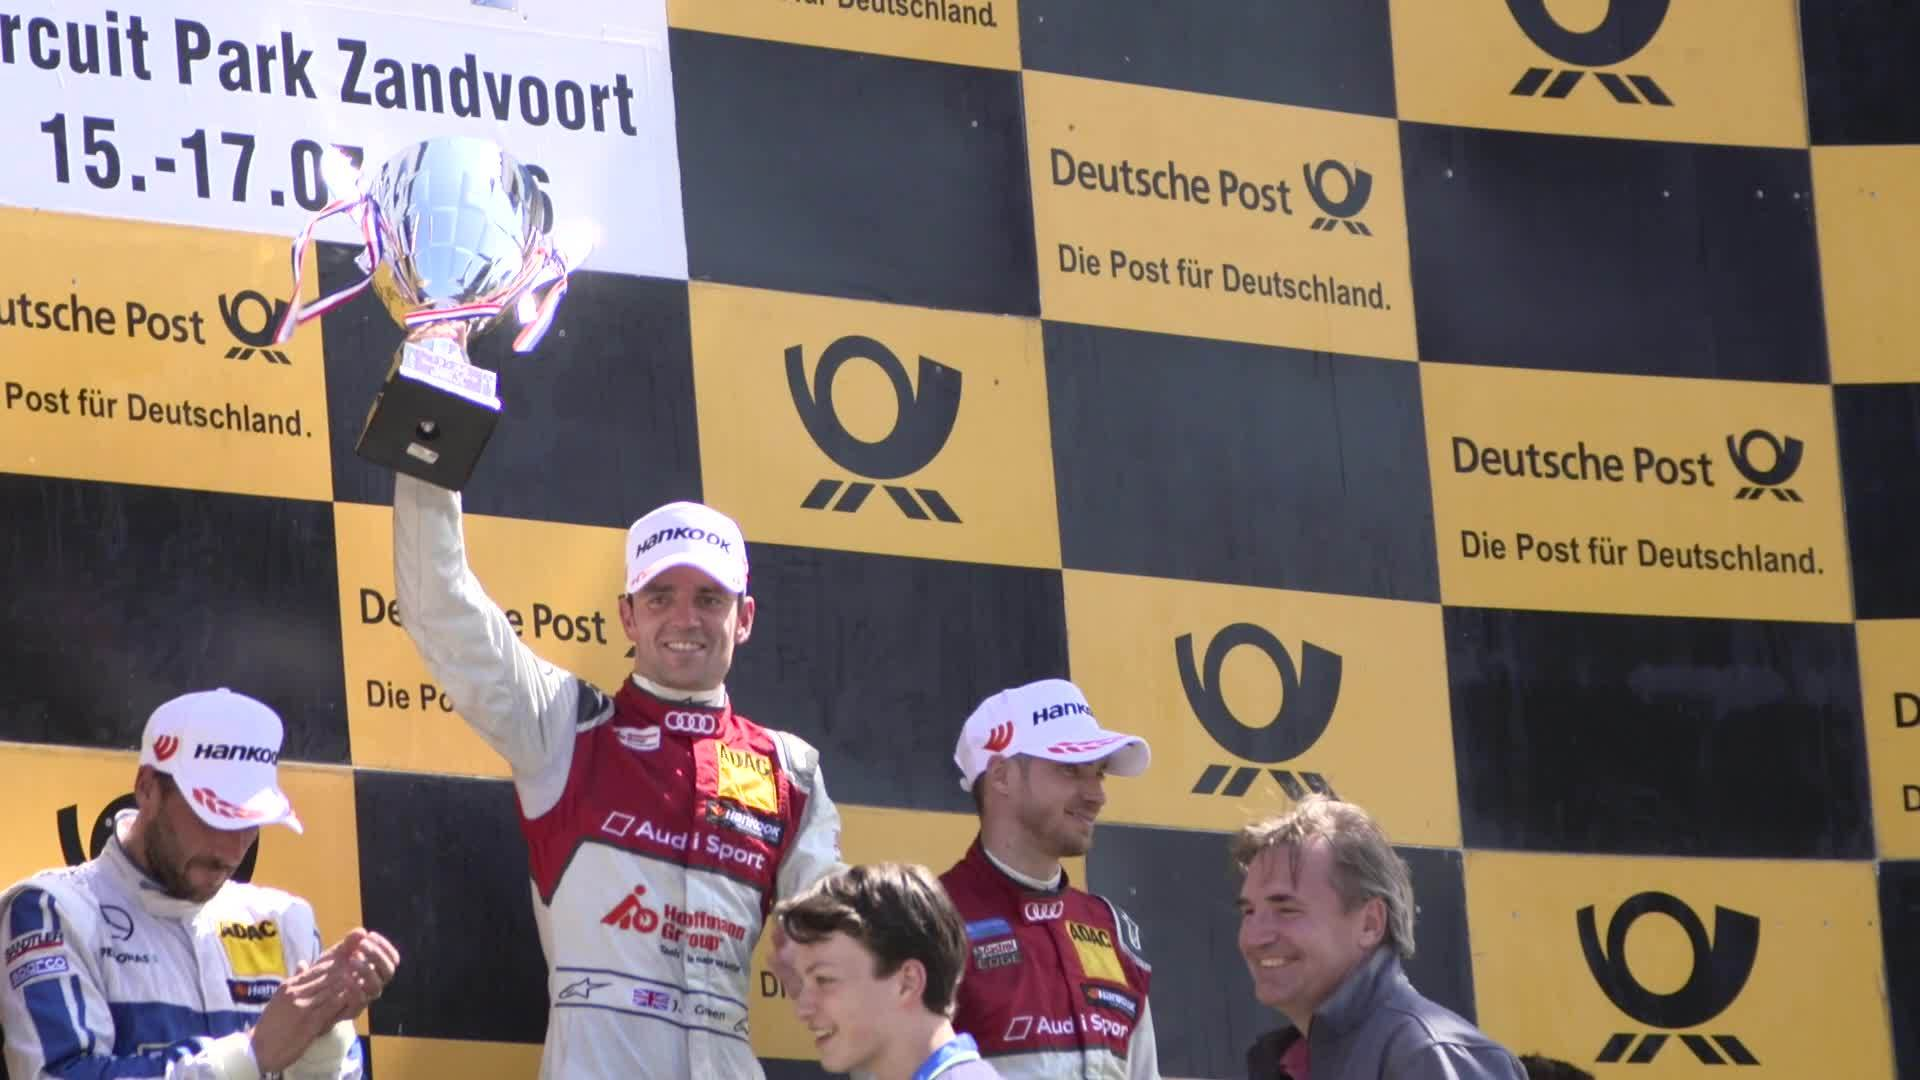 DTM - First victory this season for Jamie Green